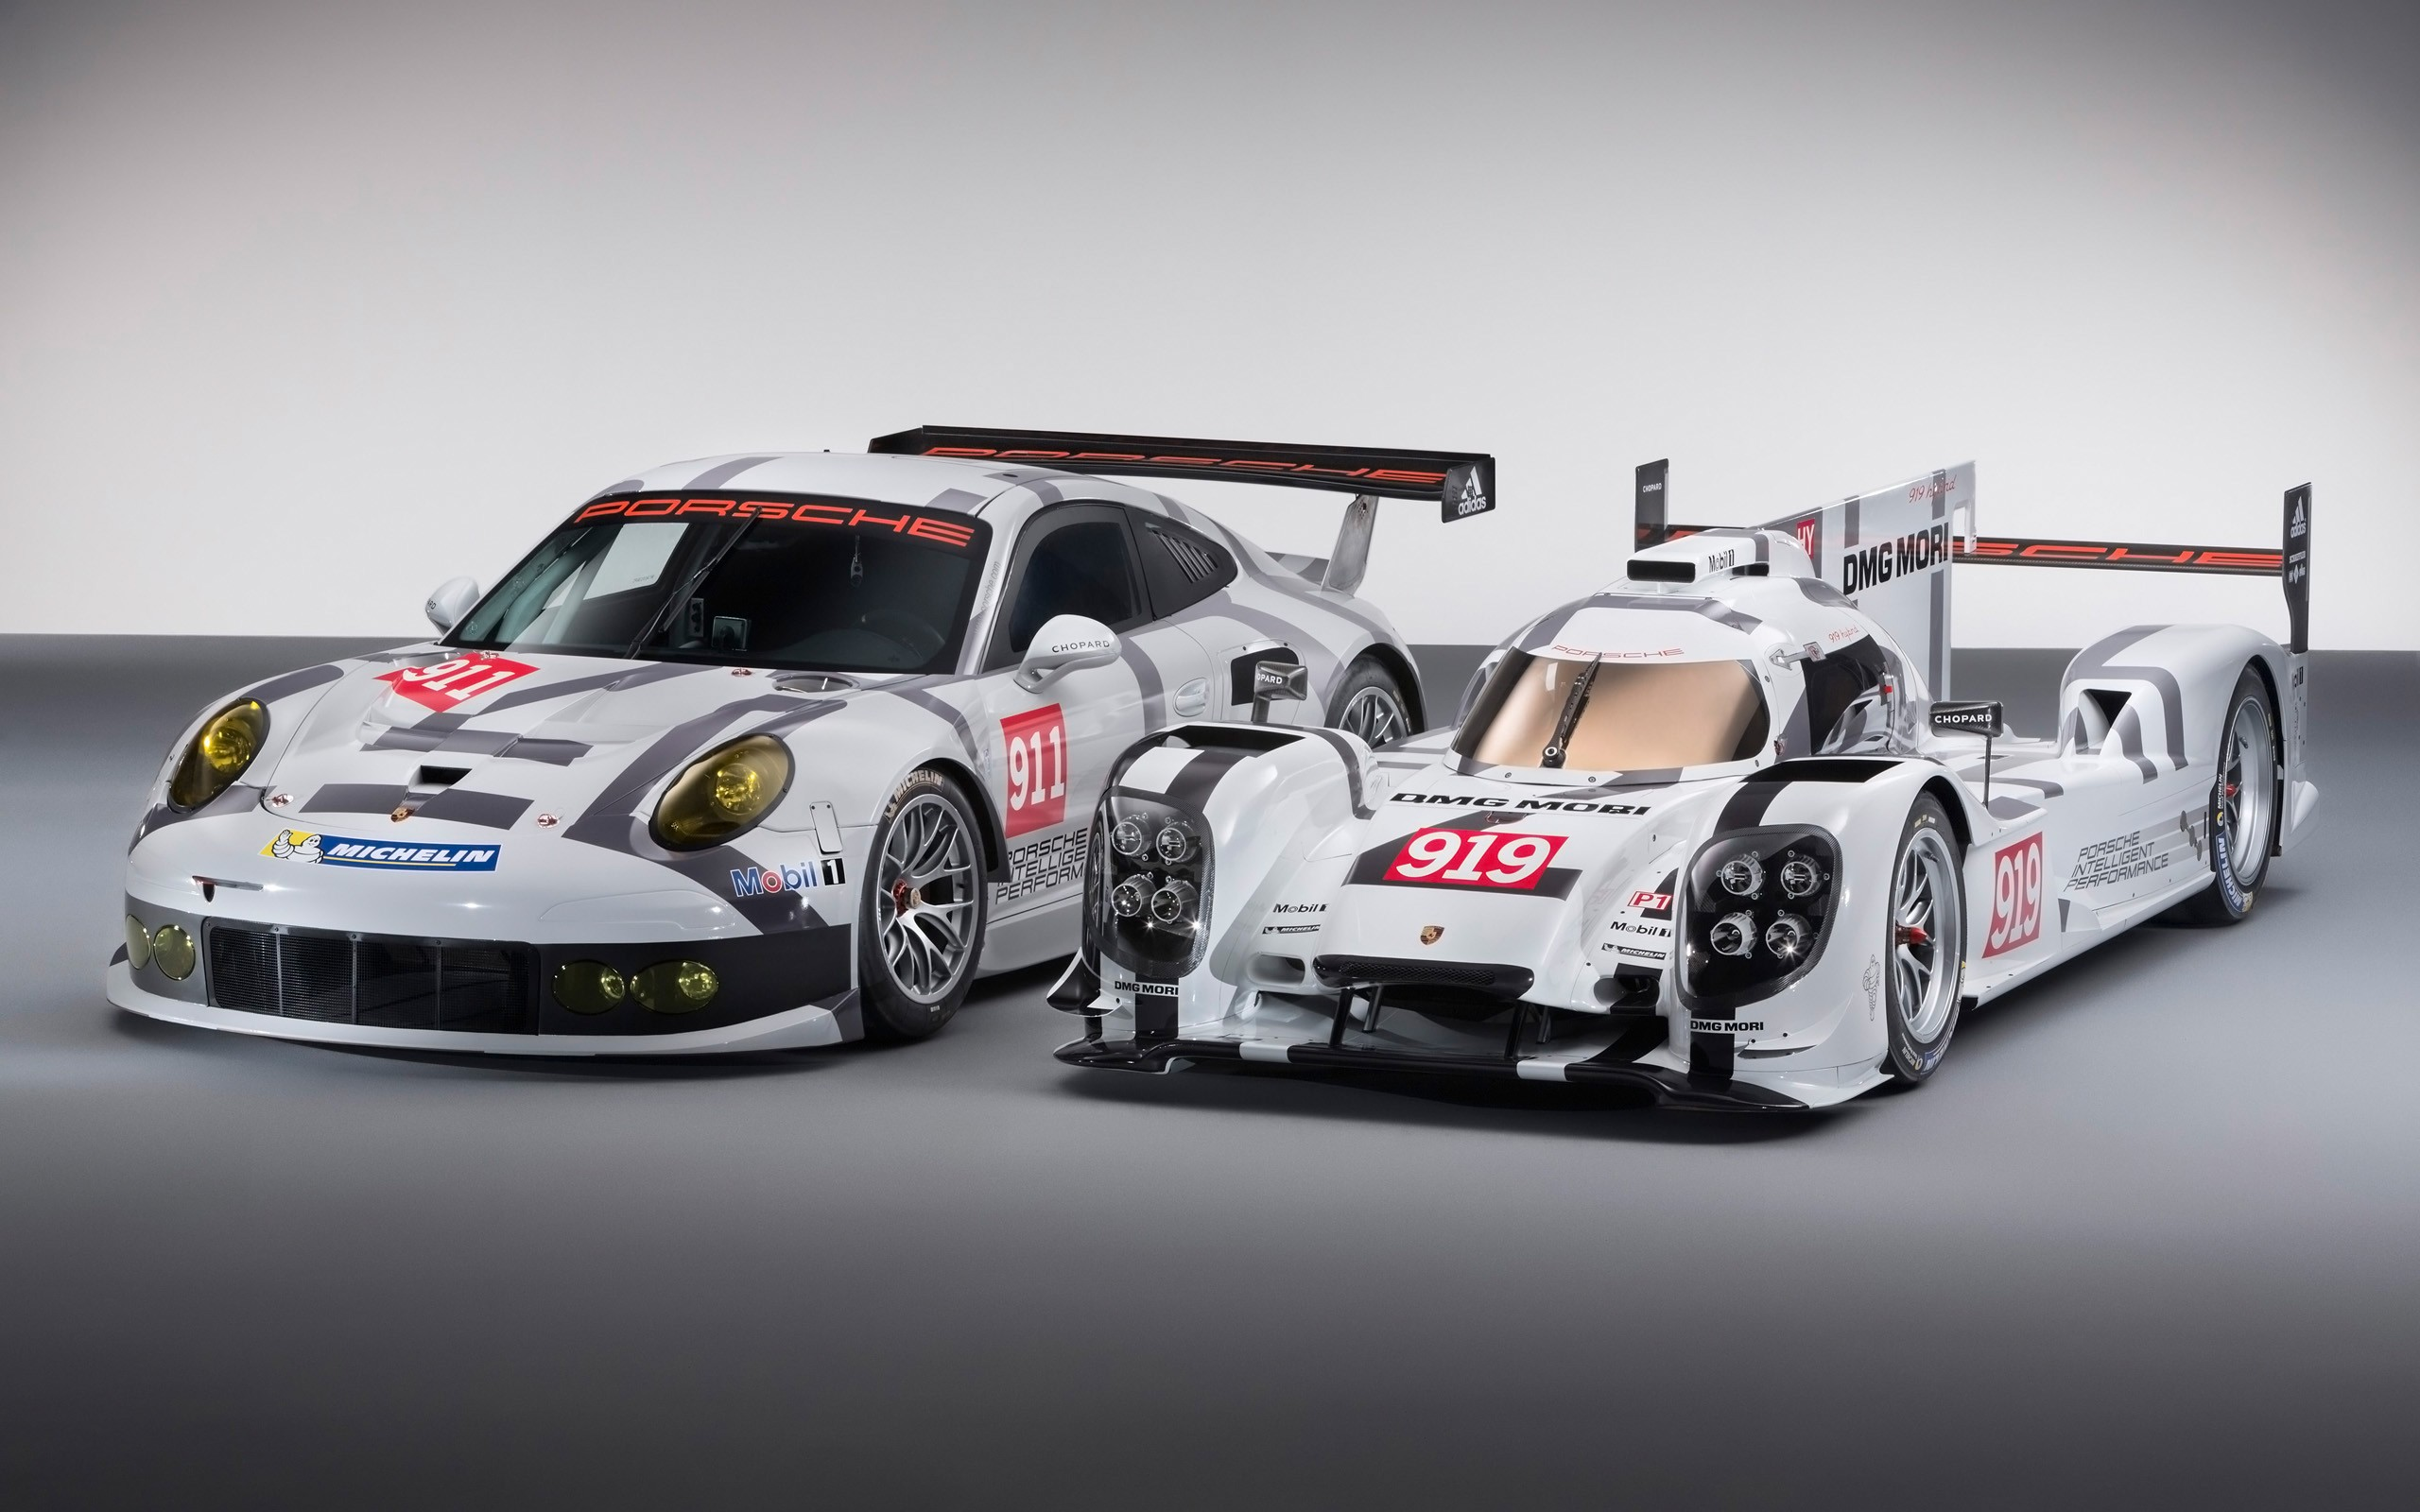 2015 porsche 919 hybrid le mans winner wallpaper | hd car wallpapers